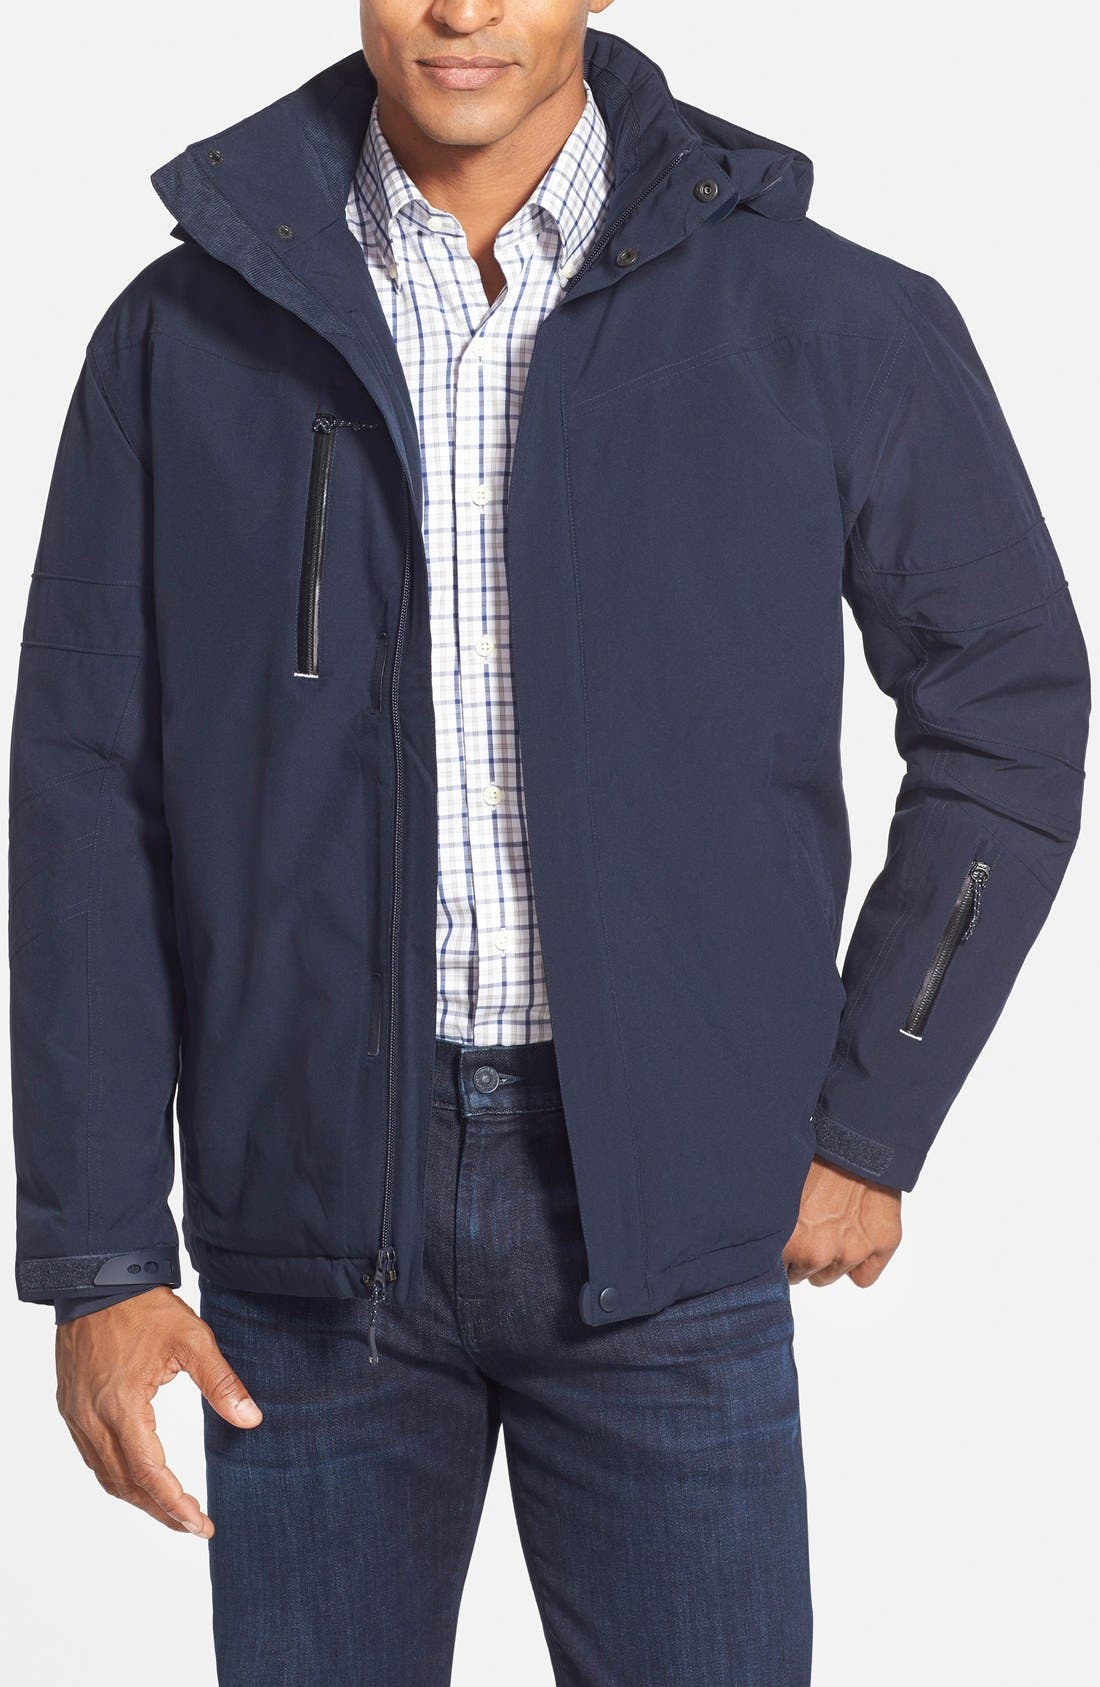 Alternate Image 1 Selected - Cutter & Buck 'WeatherTec Sanders' Jacket (Online Only)